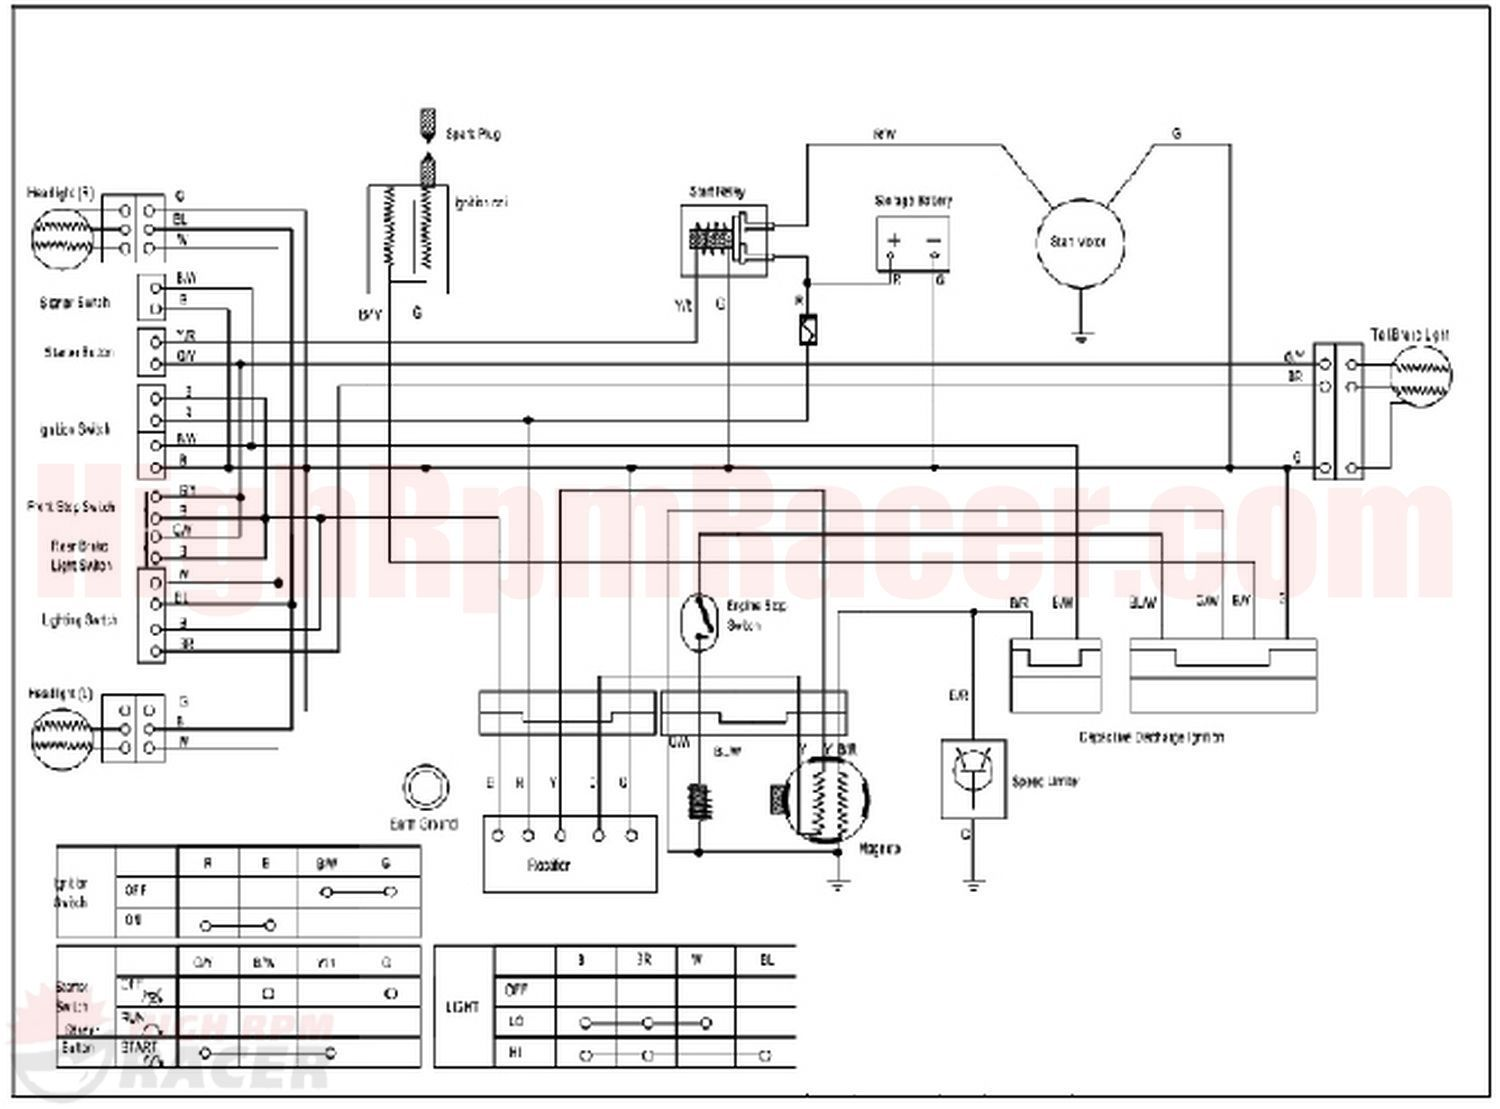 287eced1a872c94c2a3a13a8b8f91a8c baja 50 atv wiring diagram coolster wiring diagram \u2022 wiring roketa 250cc atv wiring diagram at nearapp.co